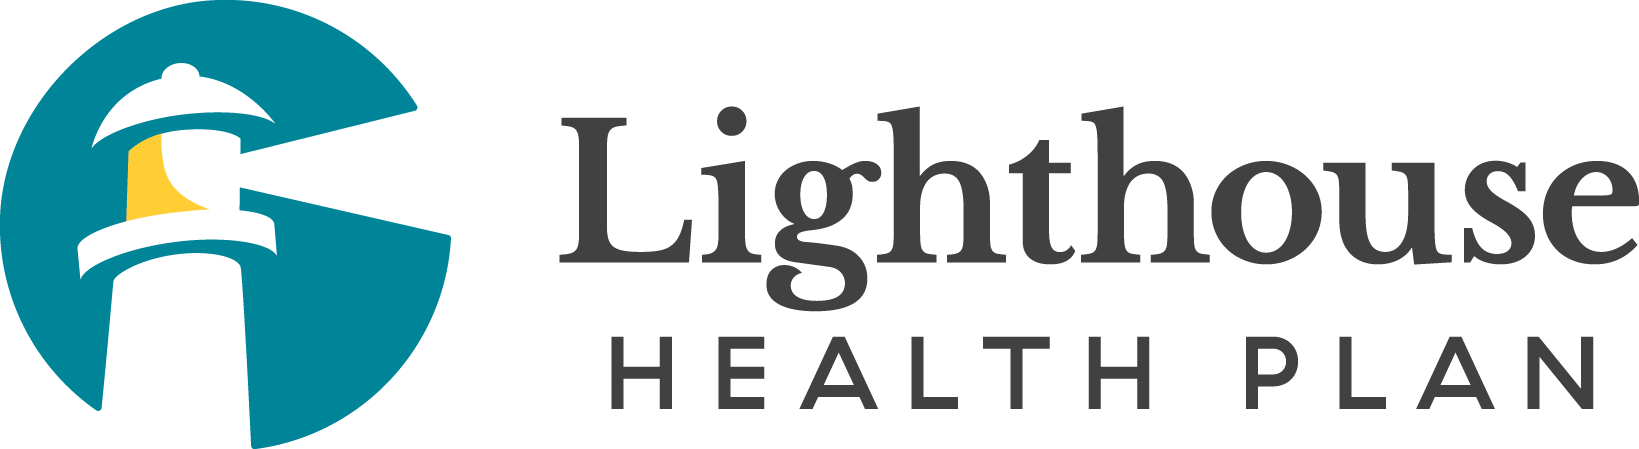 Lighthouse Health Plan